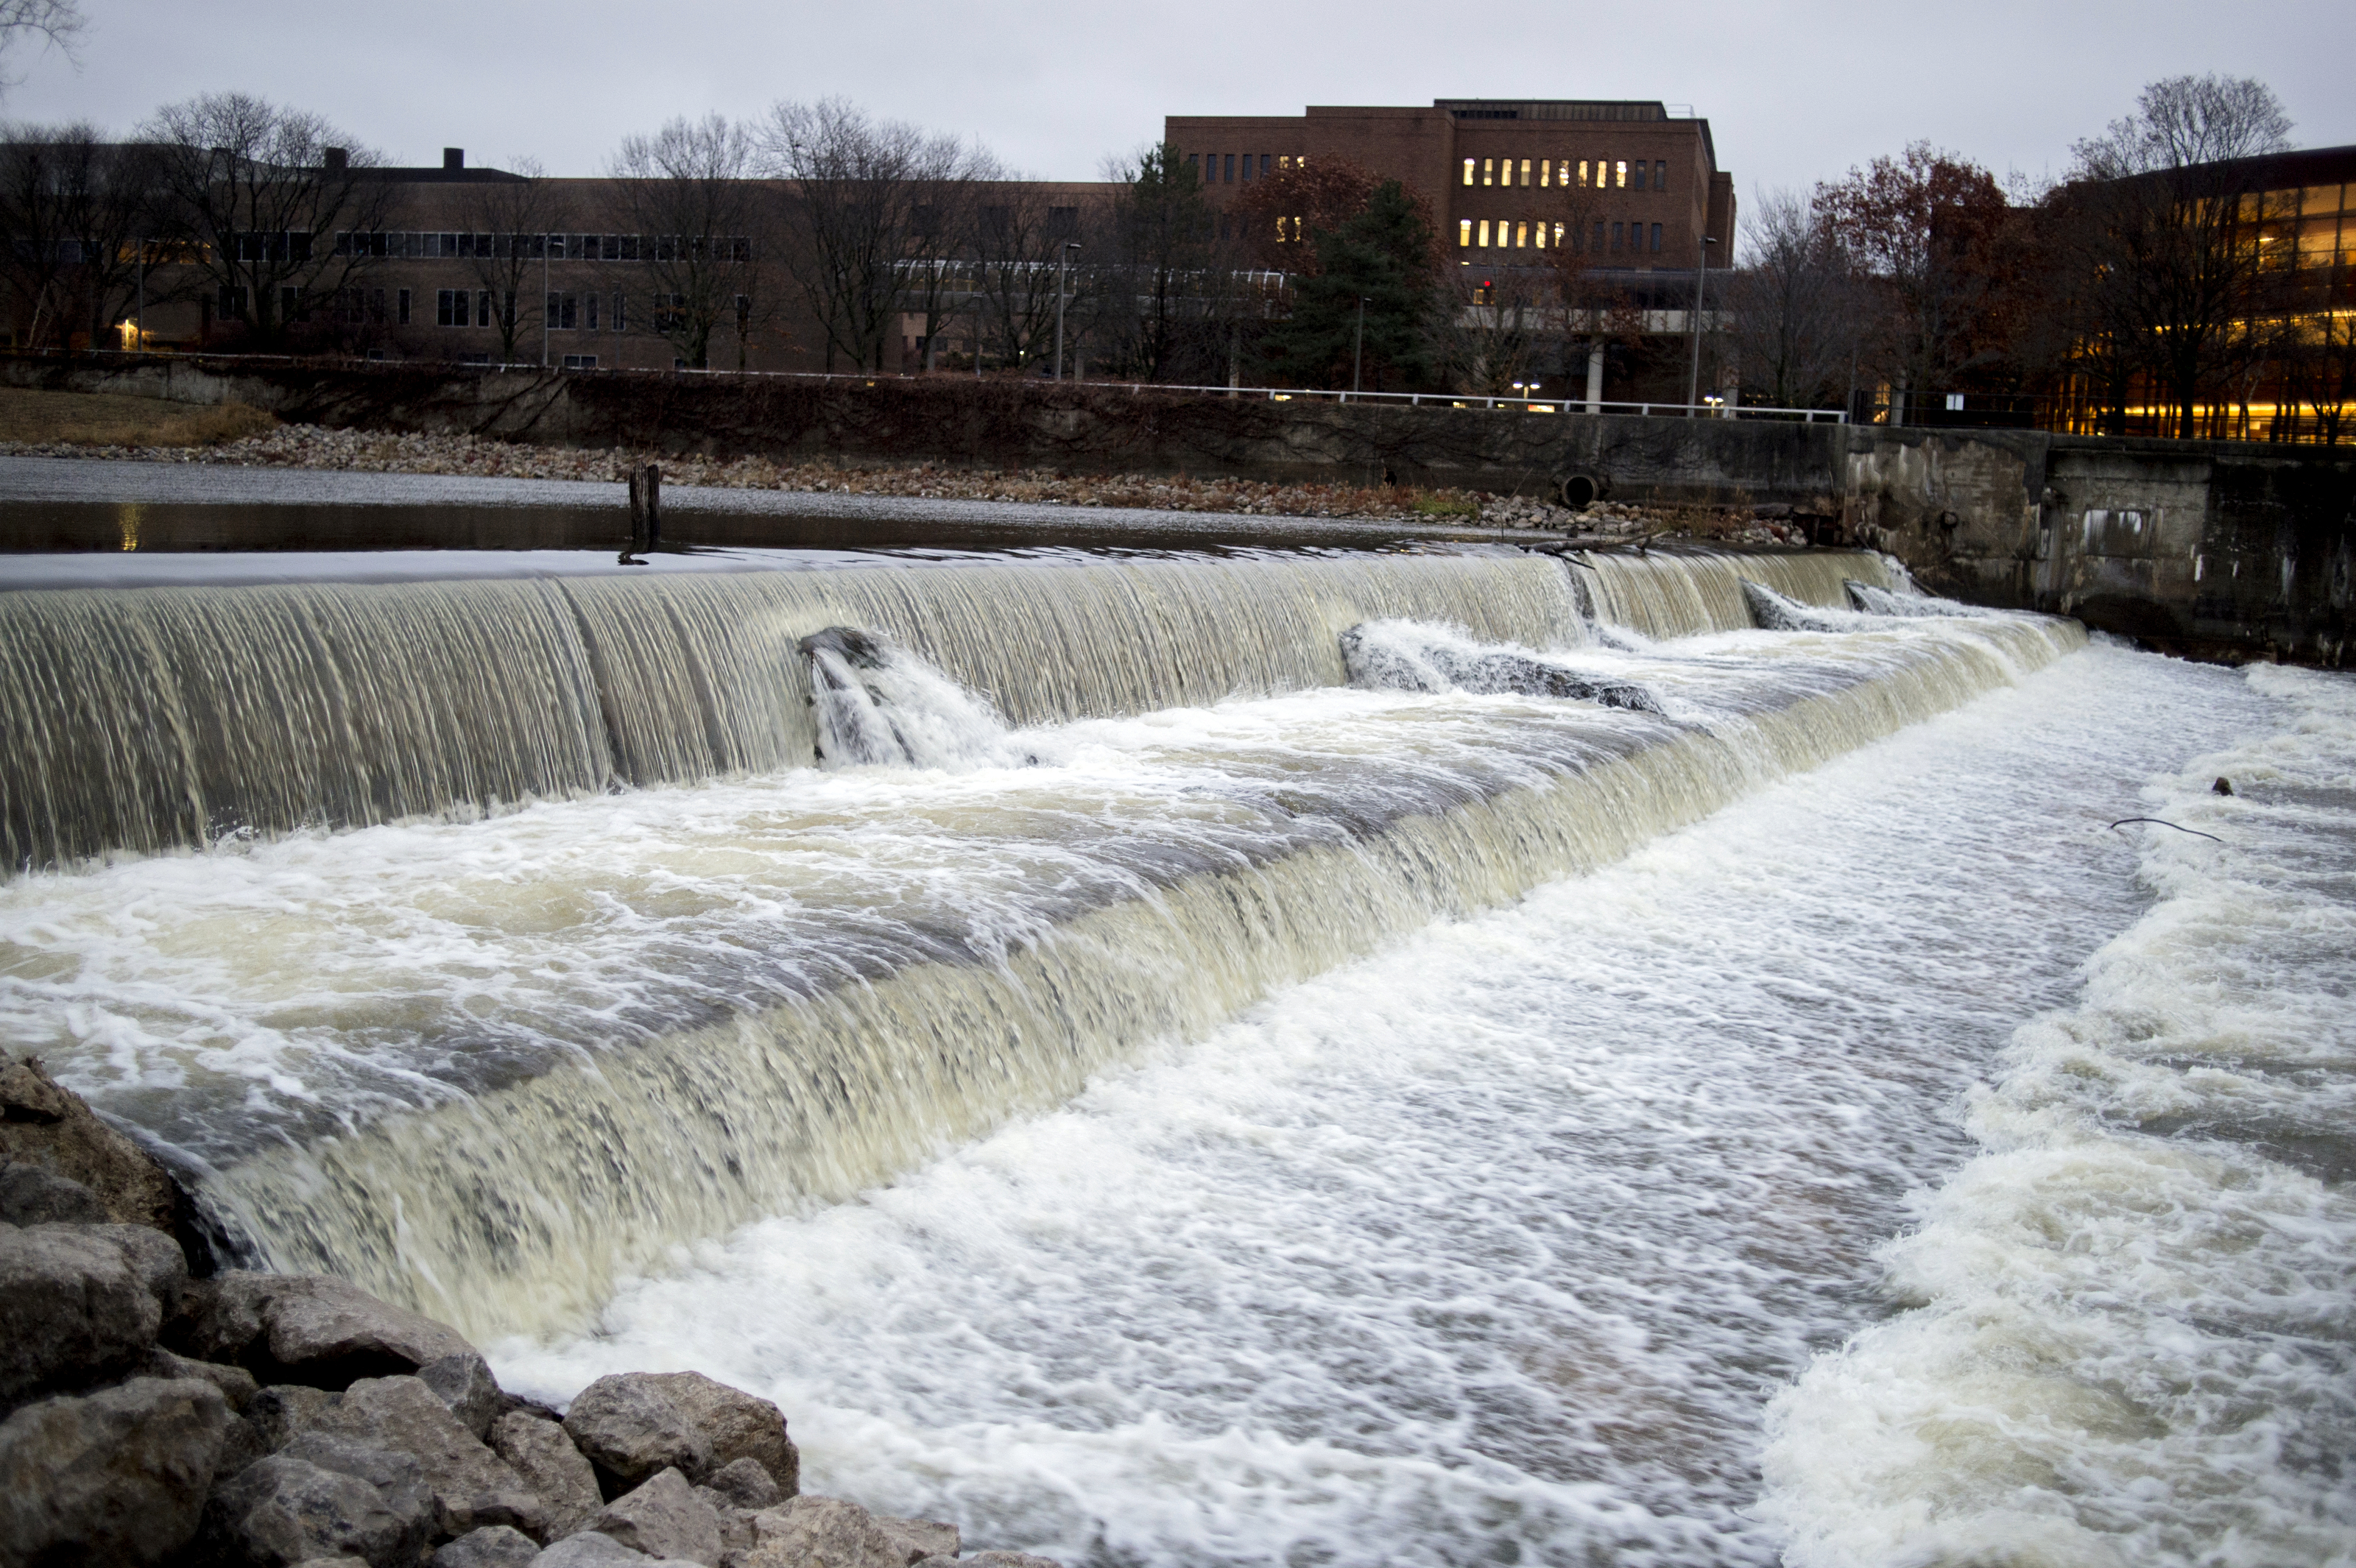 2.5 million gallons of partially--treated sewage spills into Flint River from Lapeer